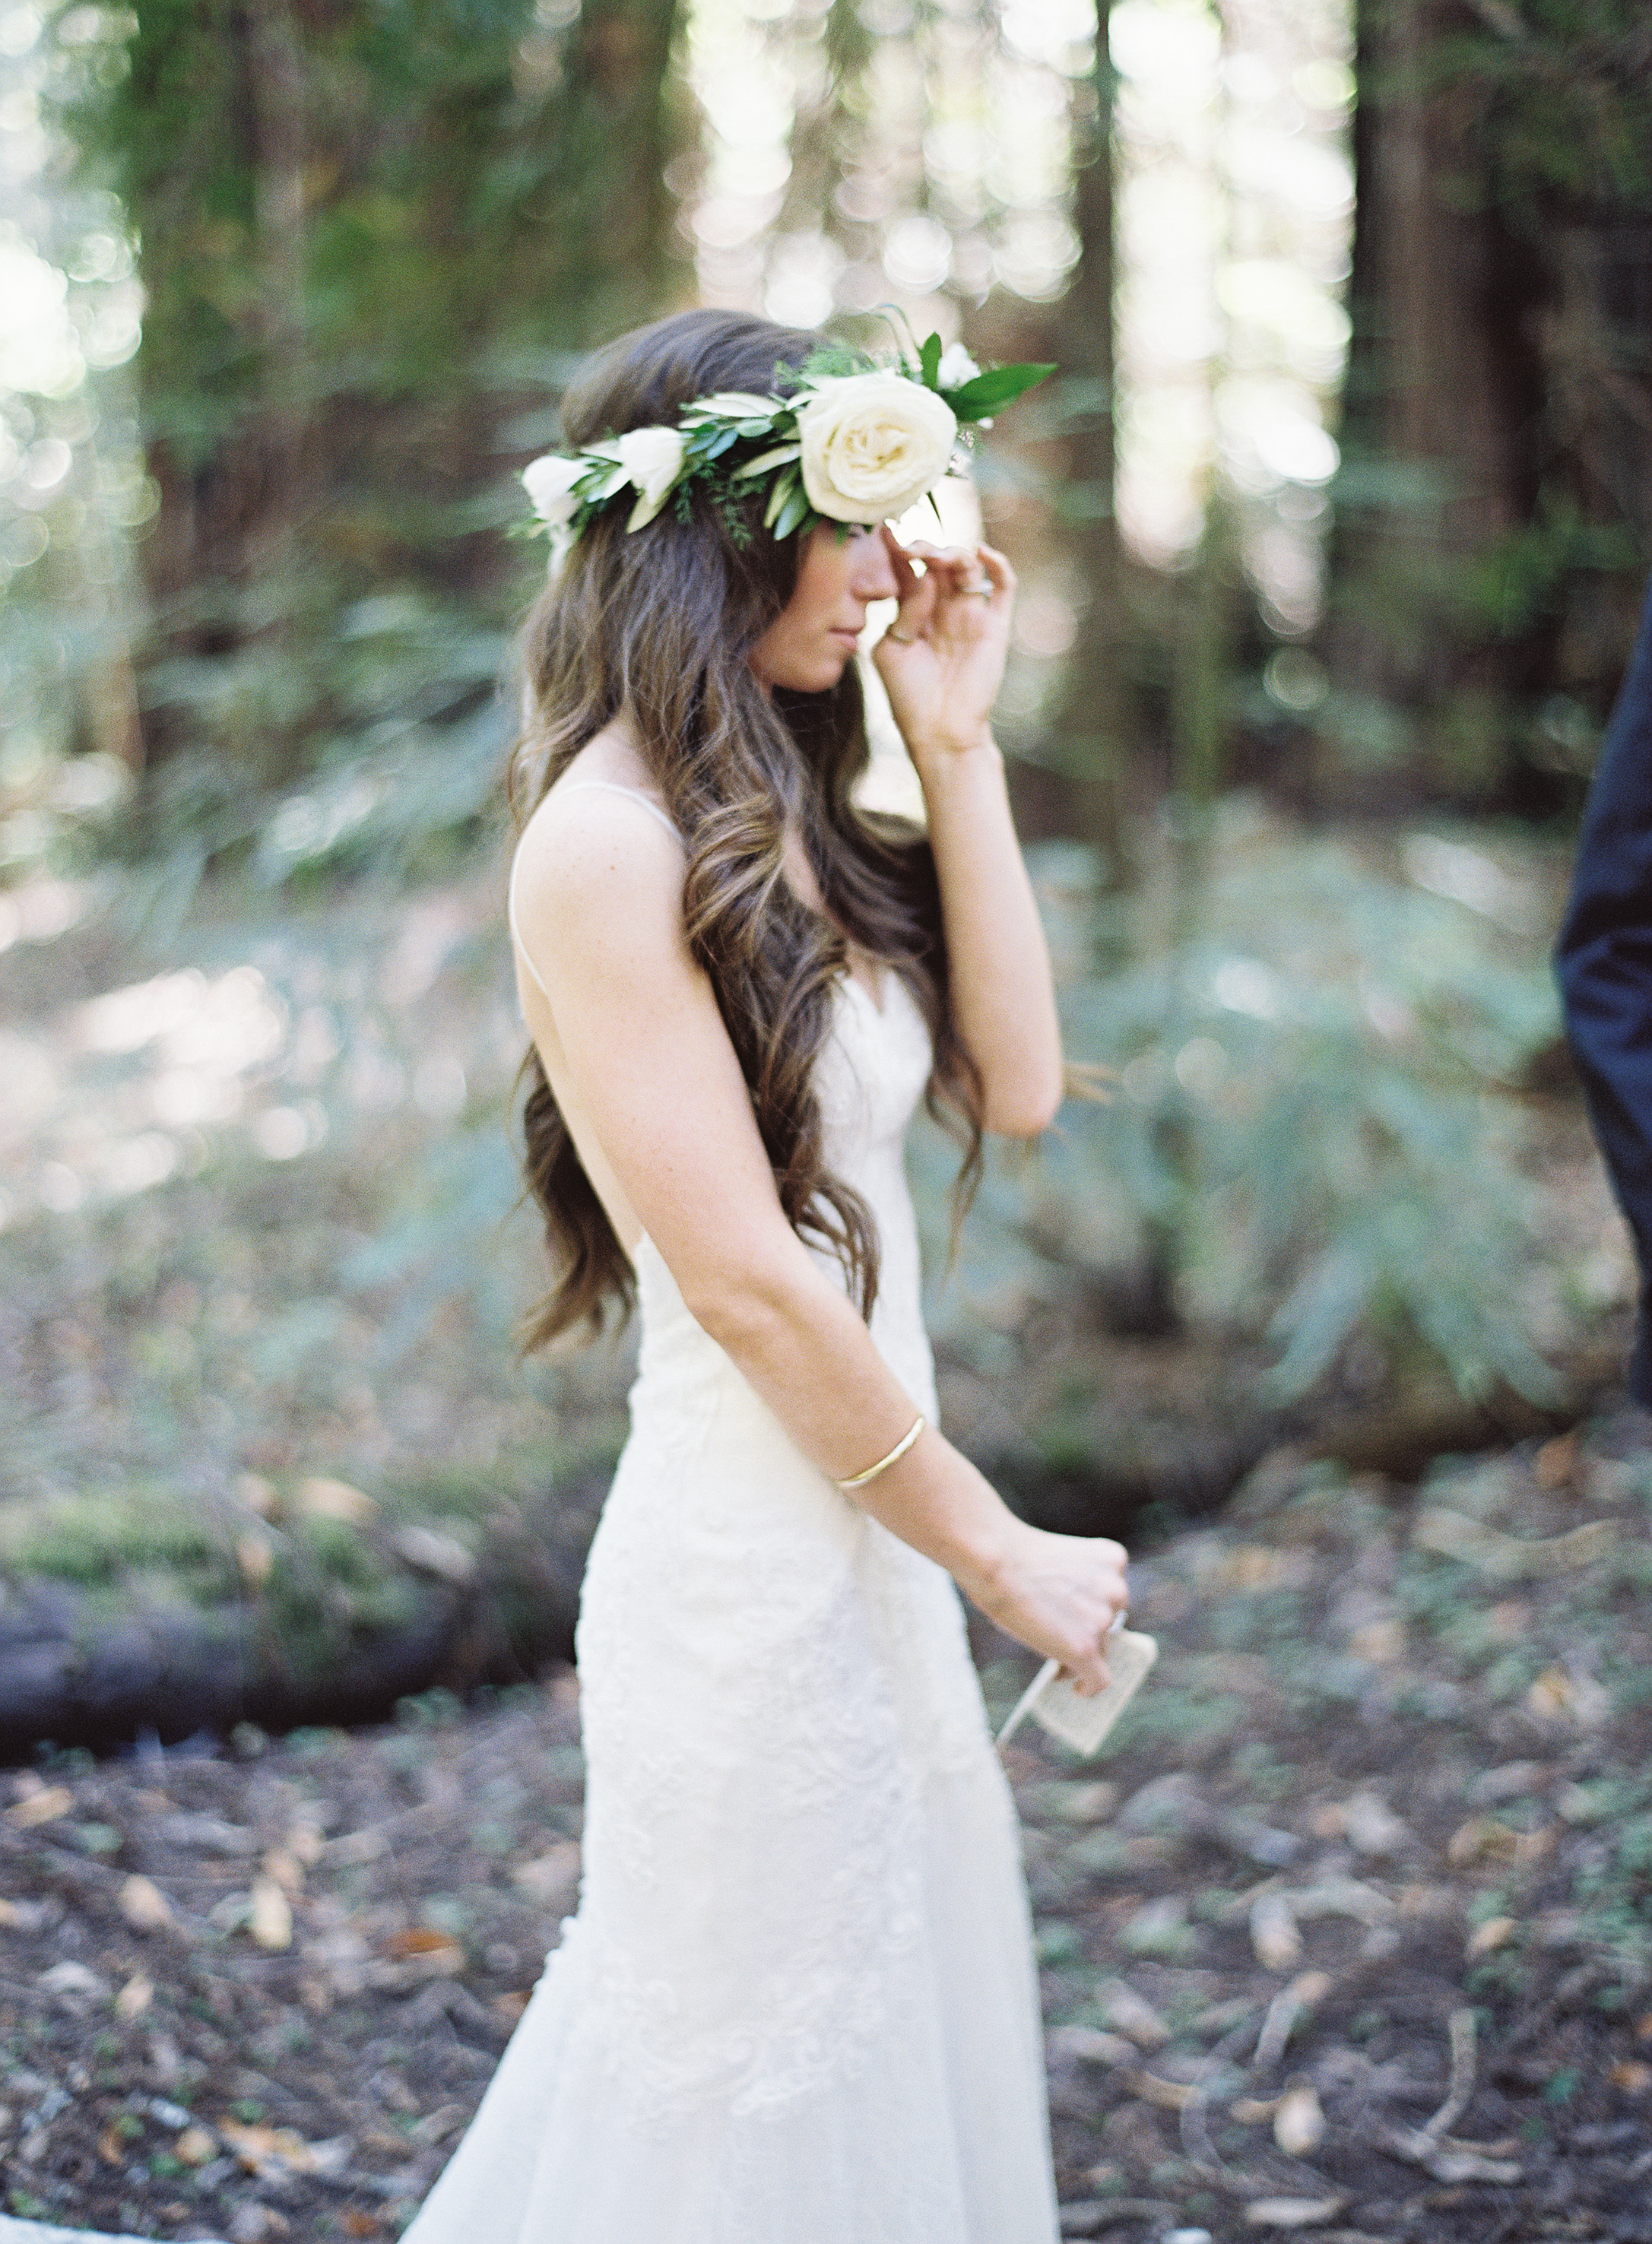 Meghan Mehan Photography | California Wedding Photographer | Napa California Wedding Photographer 081.jpg